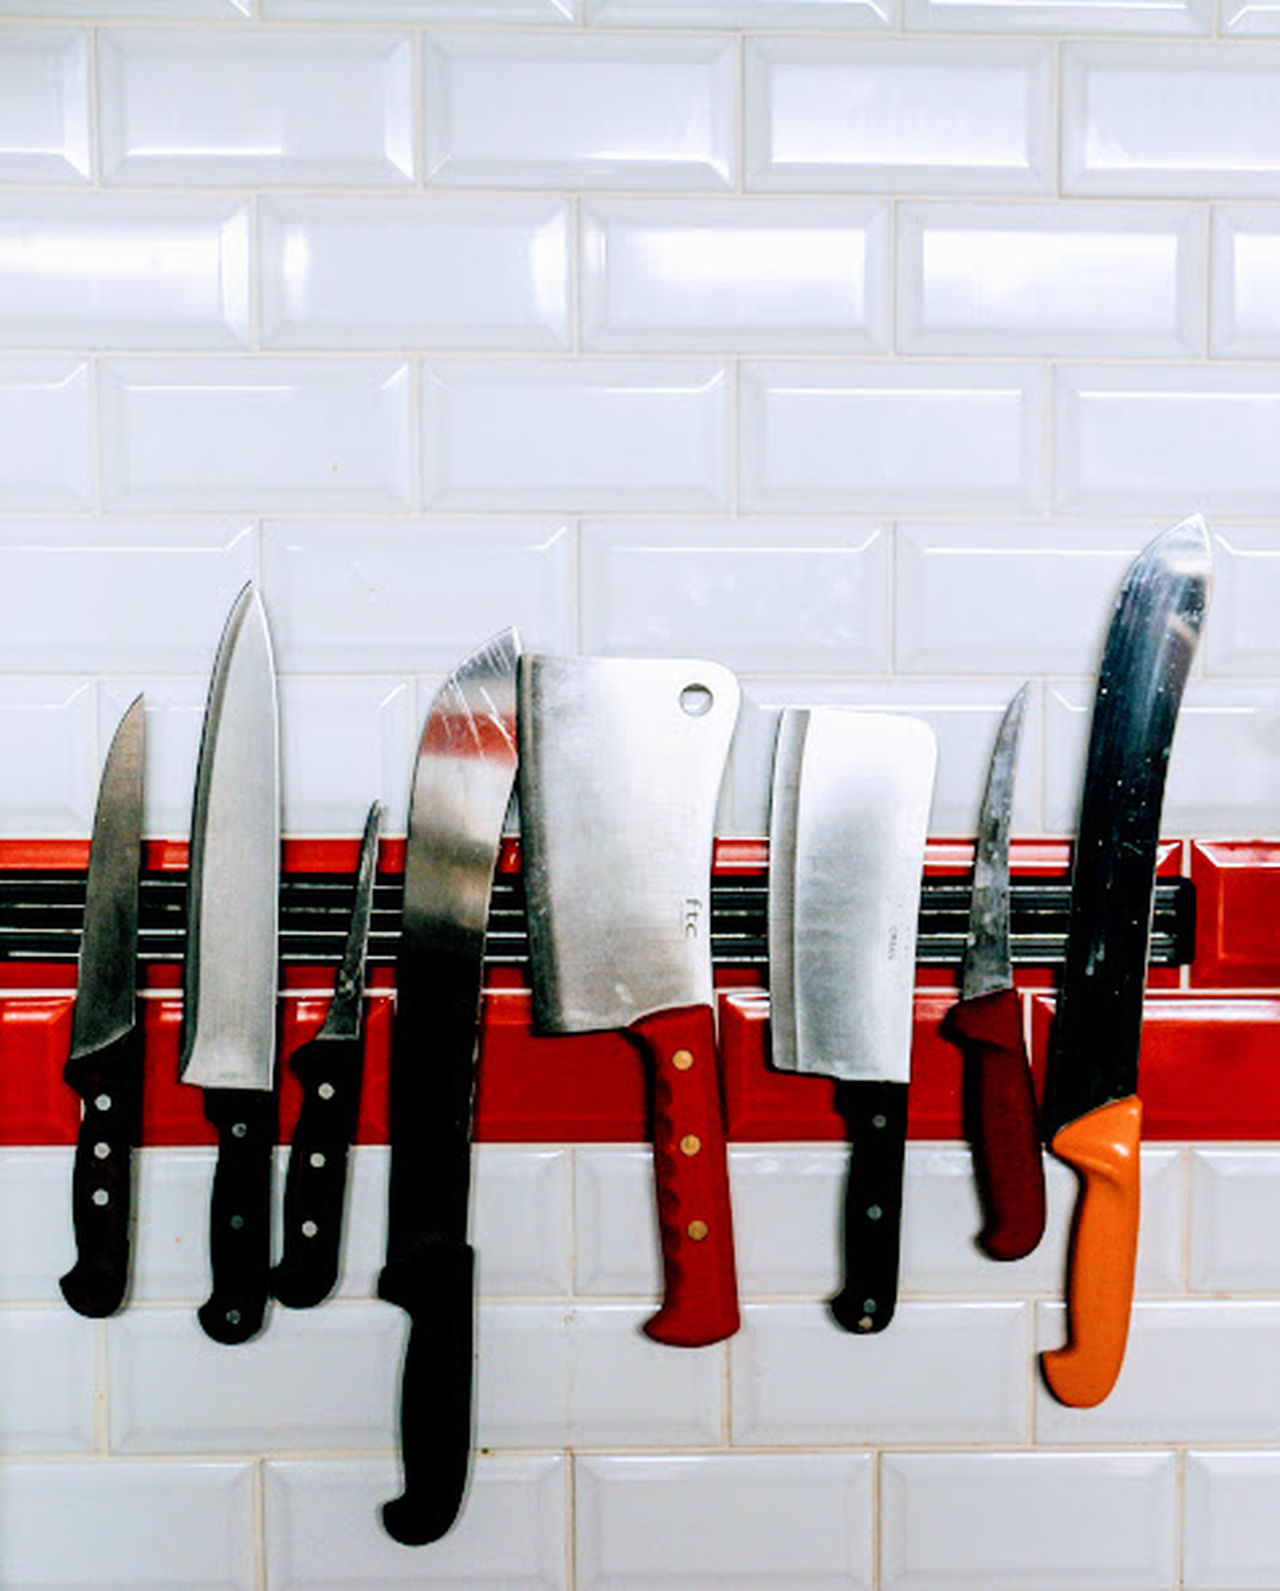 Artisan Artisan Butcher Blades Butcher Shop Butchers Butchers View Butchery Choice Cleaver Close-up Coathanger Day Indoors  Knife Knives Large Group Of Objects Meat No People Store Variation Wall Tiles White Color